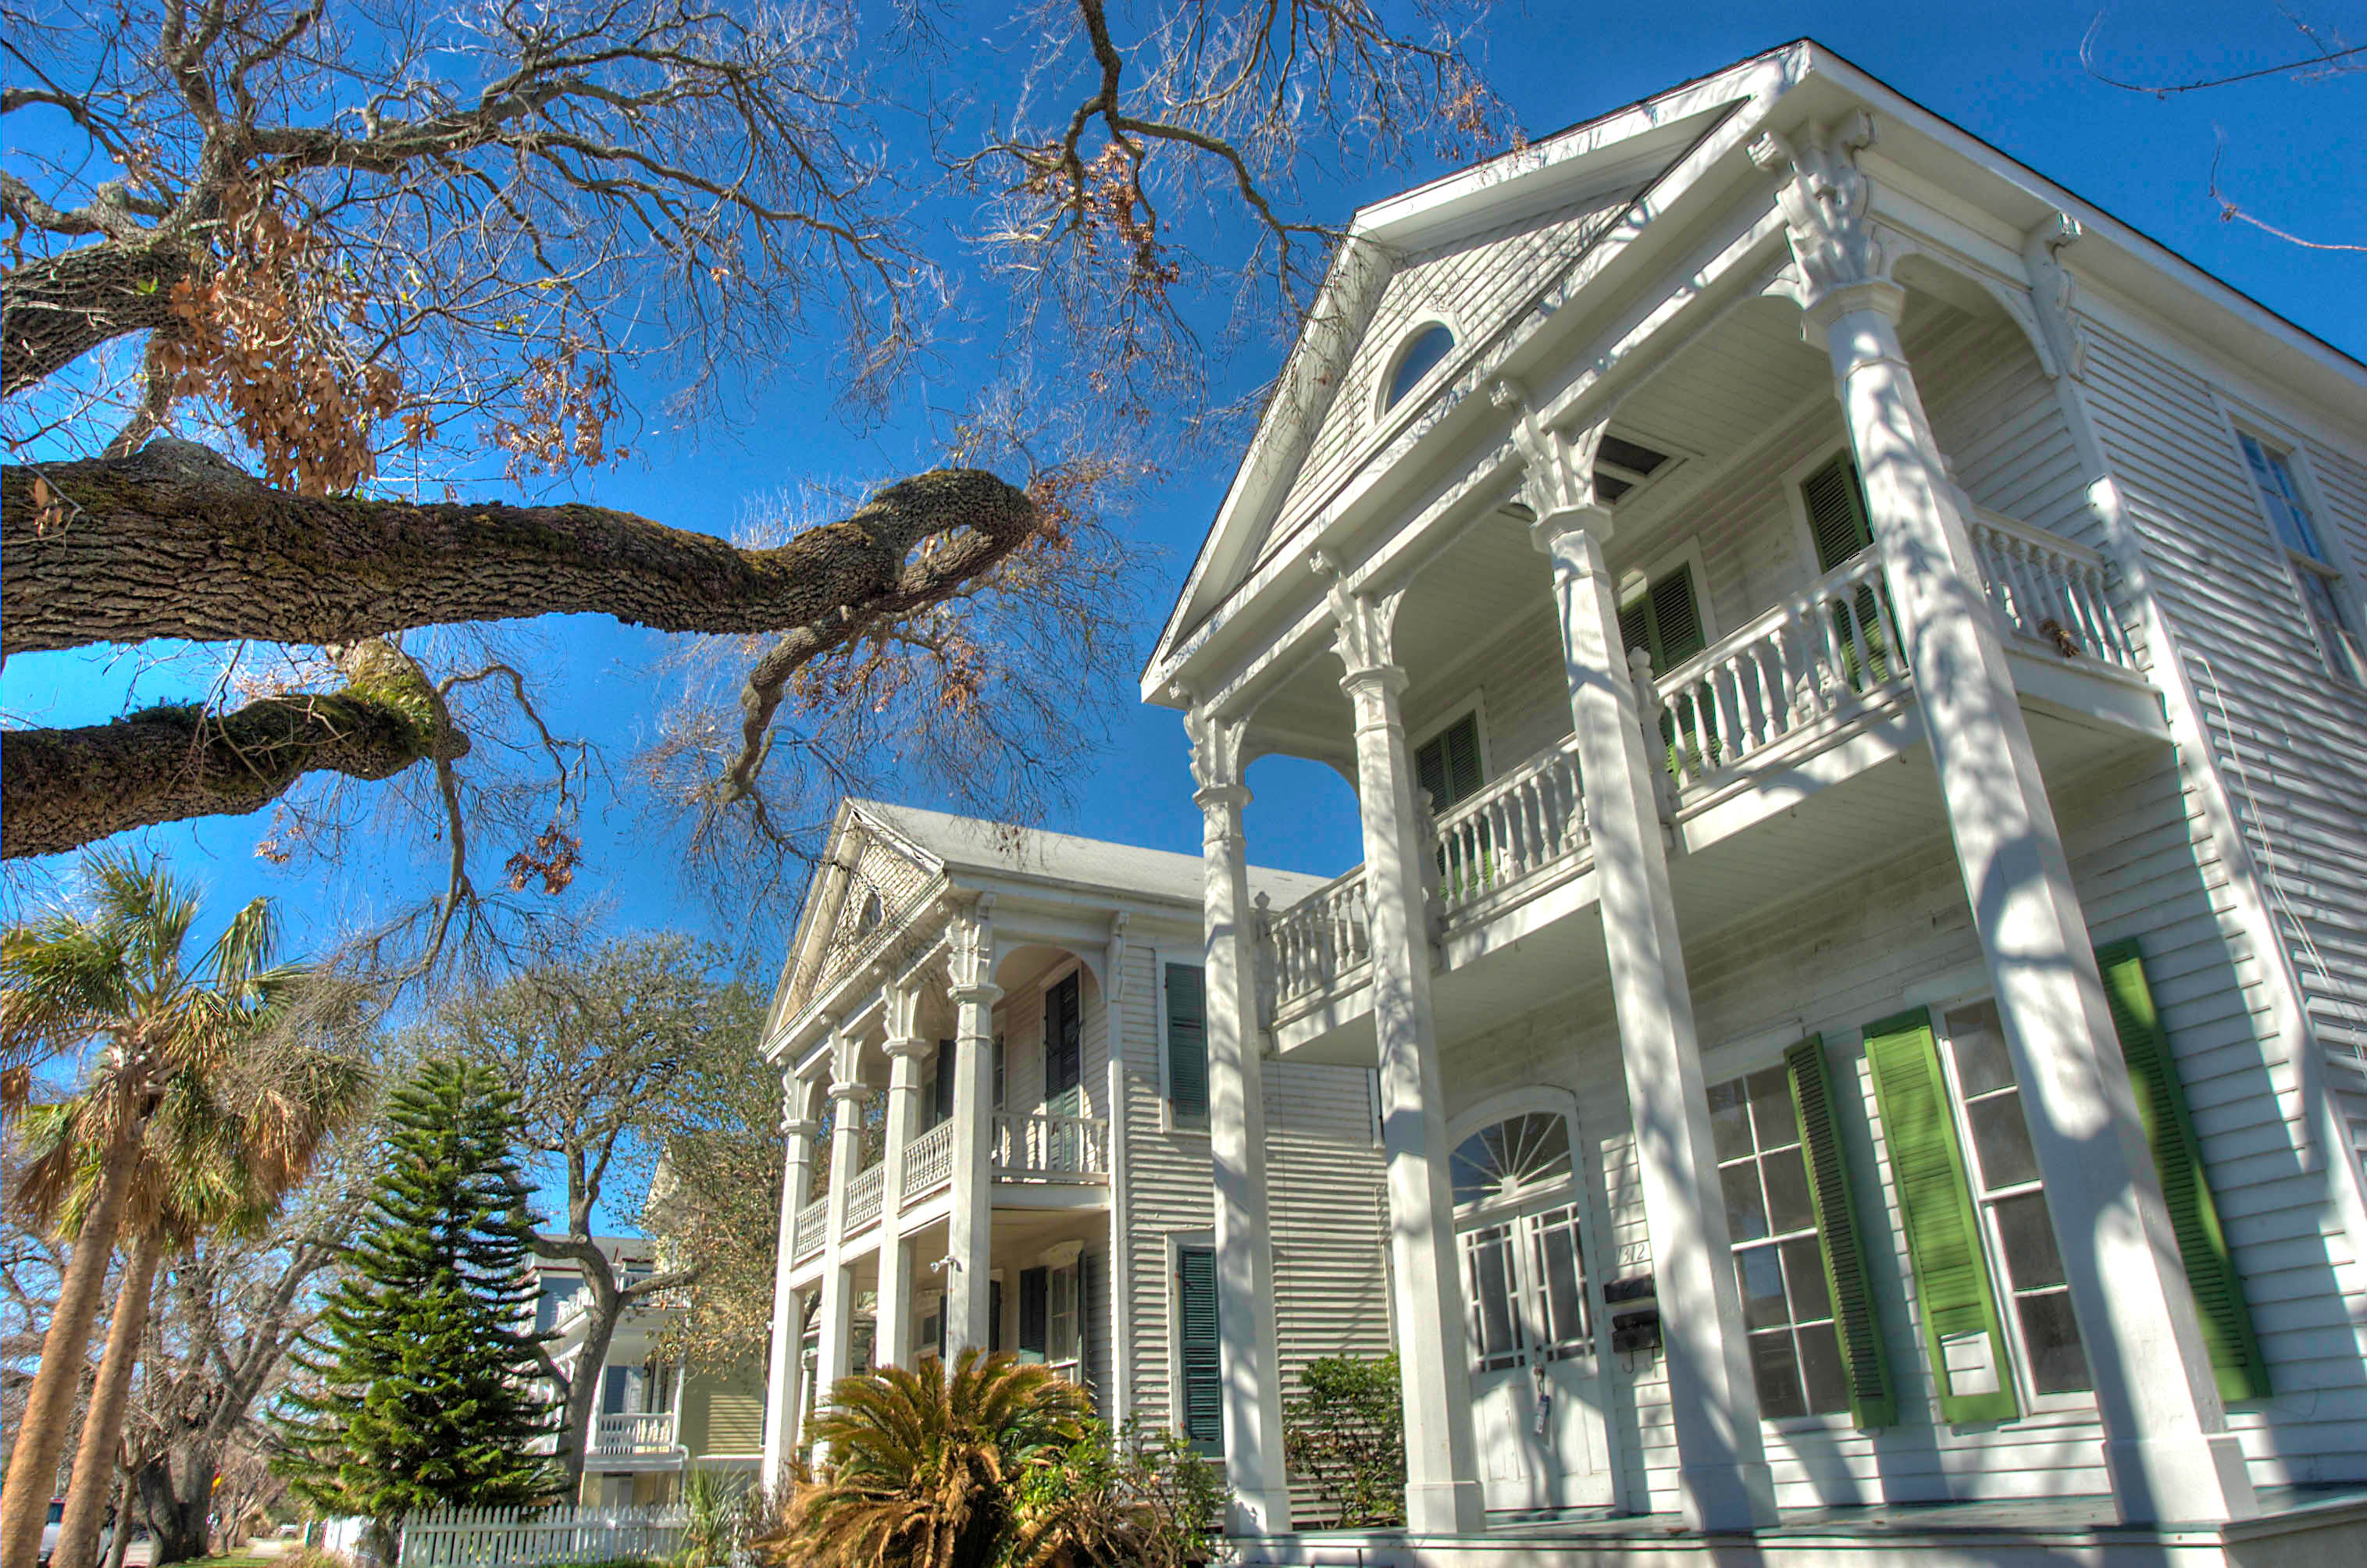 East end historic district in Galveston